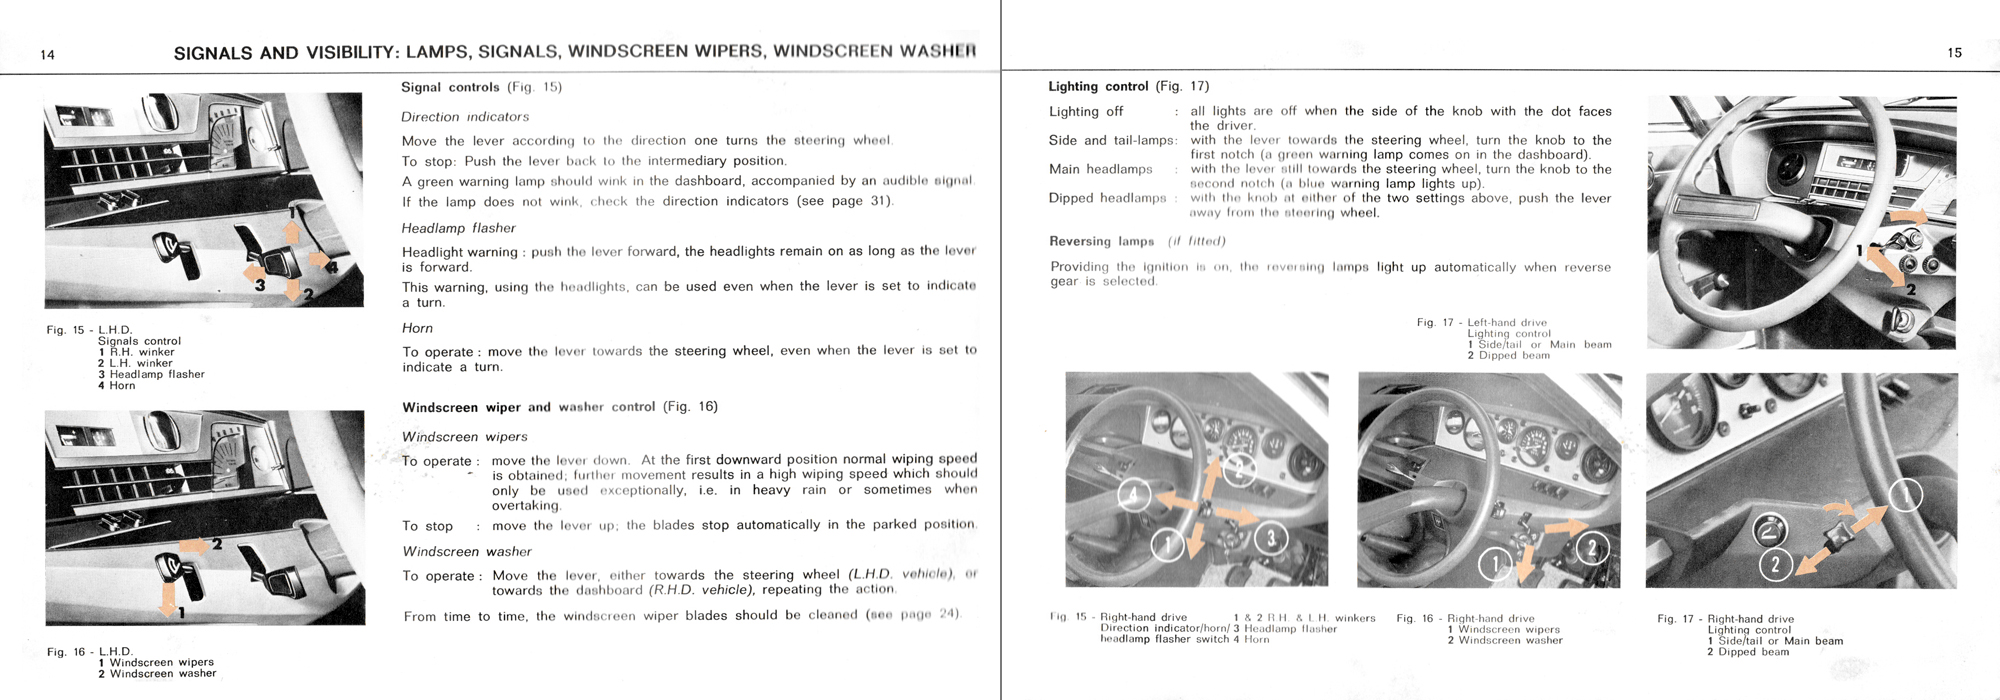 1973 Citroën GS owner's manual Page 1